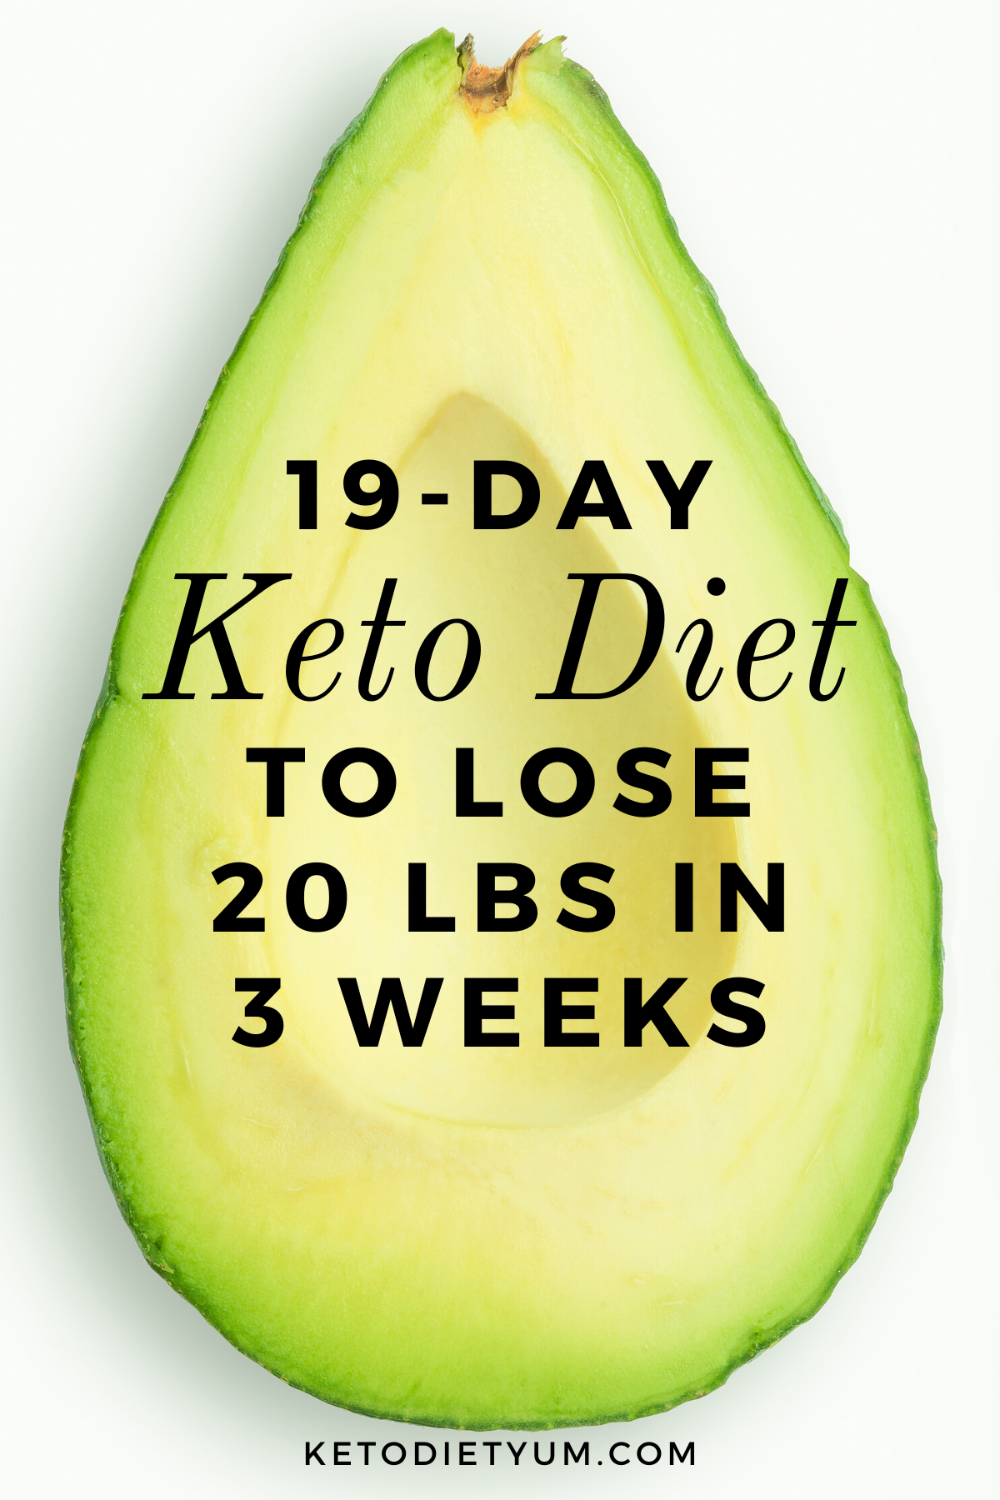 Photo of 19-Day Keto Diet Plan for Beginners Weight Loss